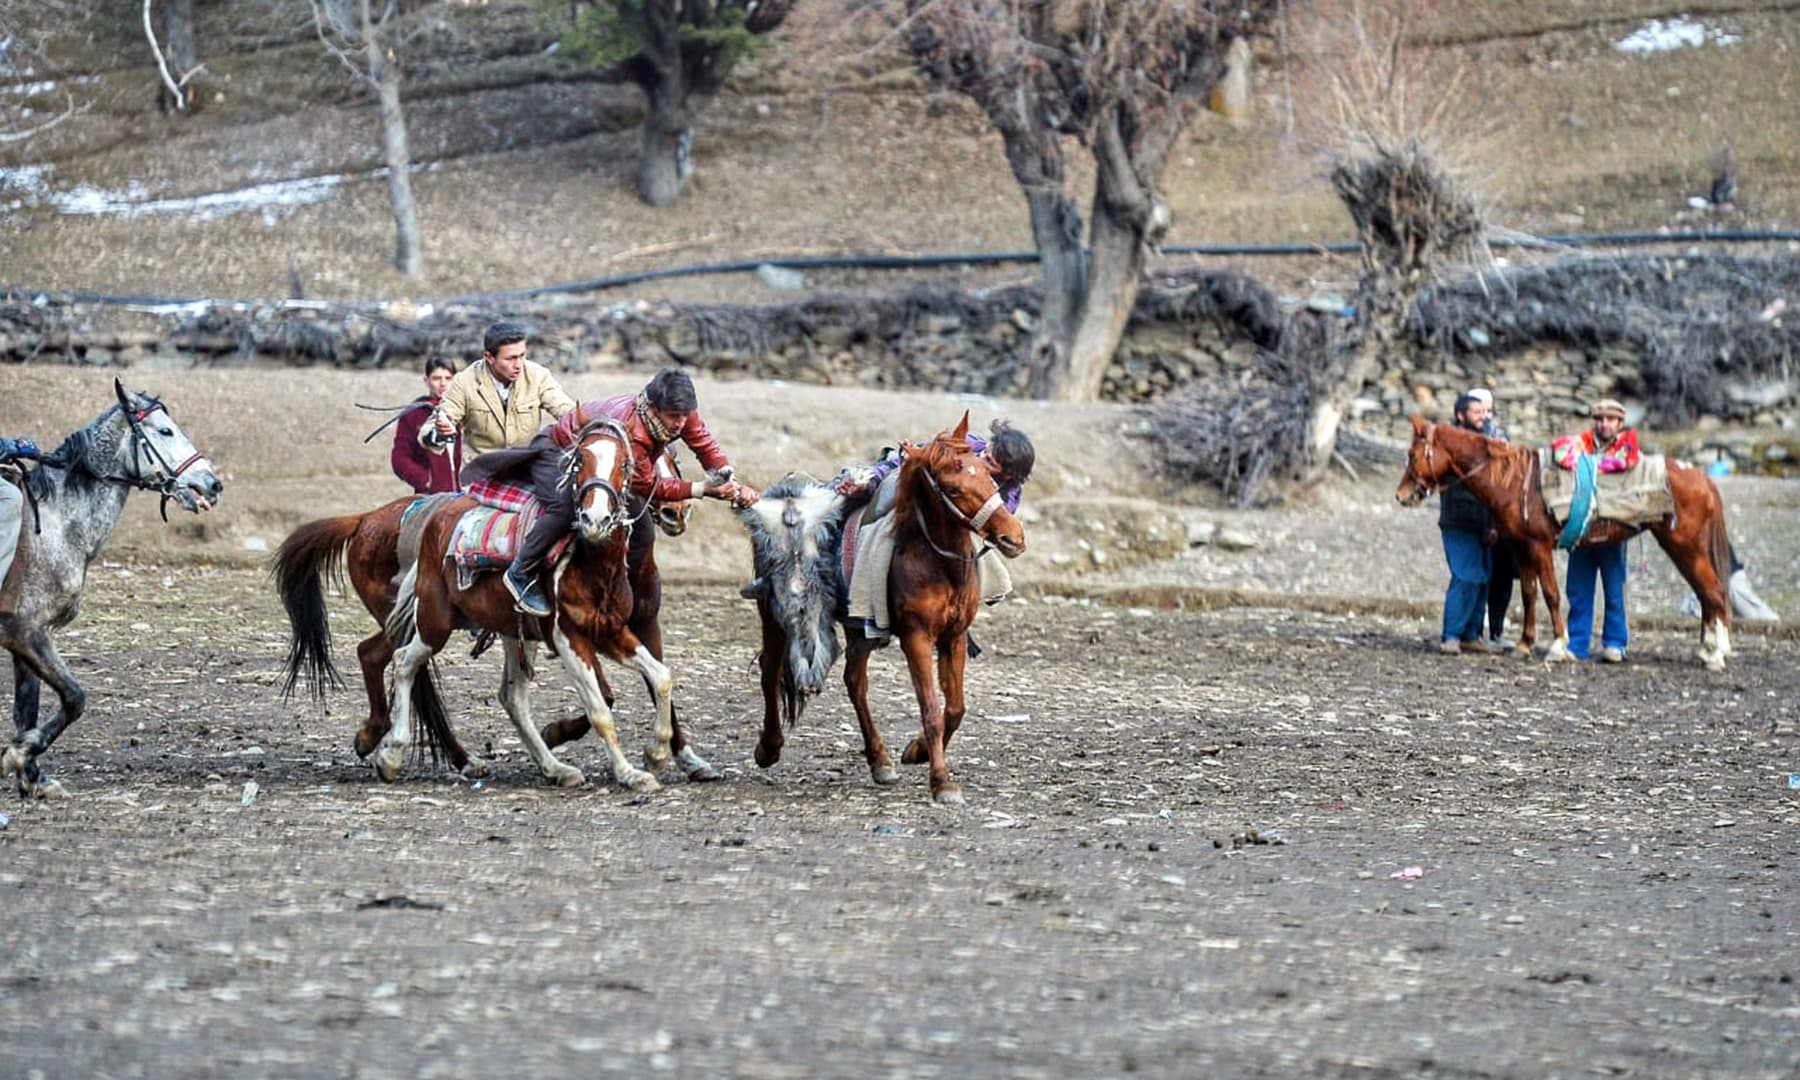 The sport involves horse-mounted players attempting to make a goal with a goat carcass.